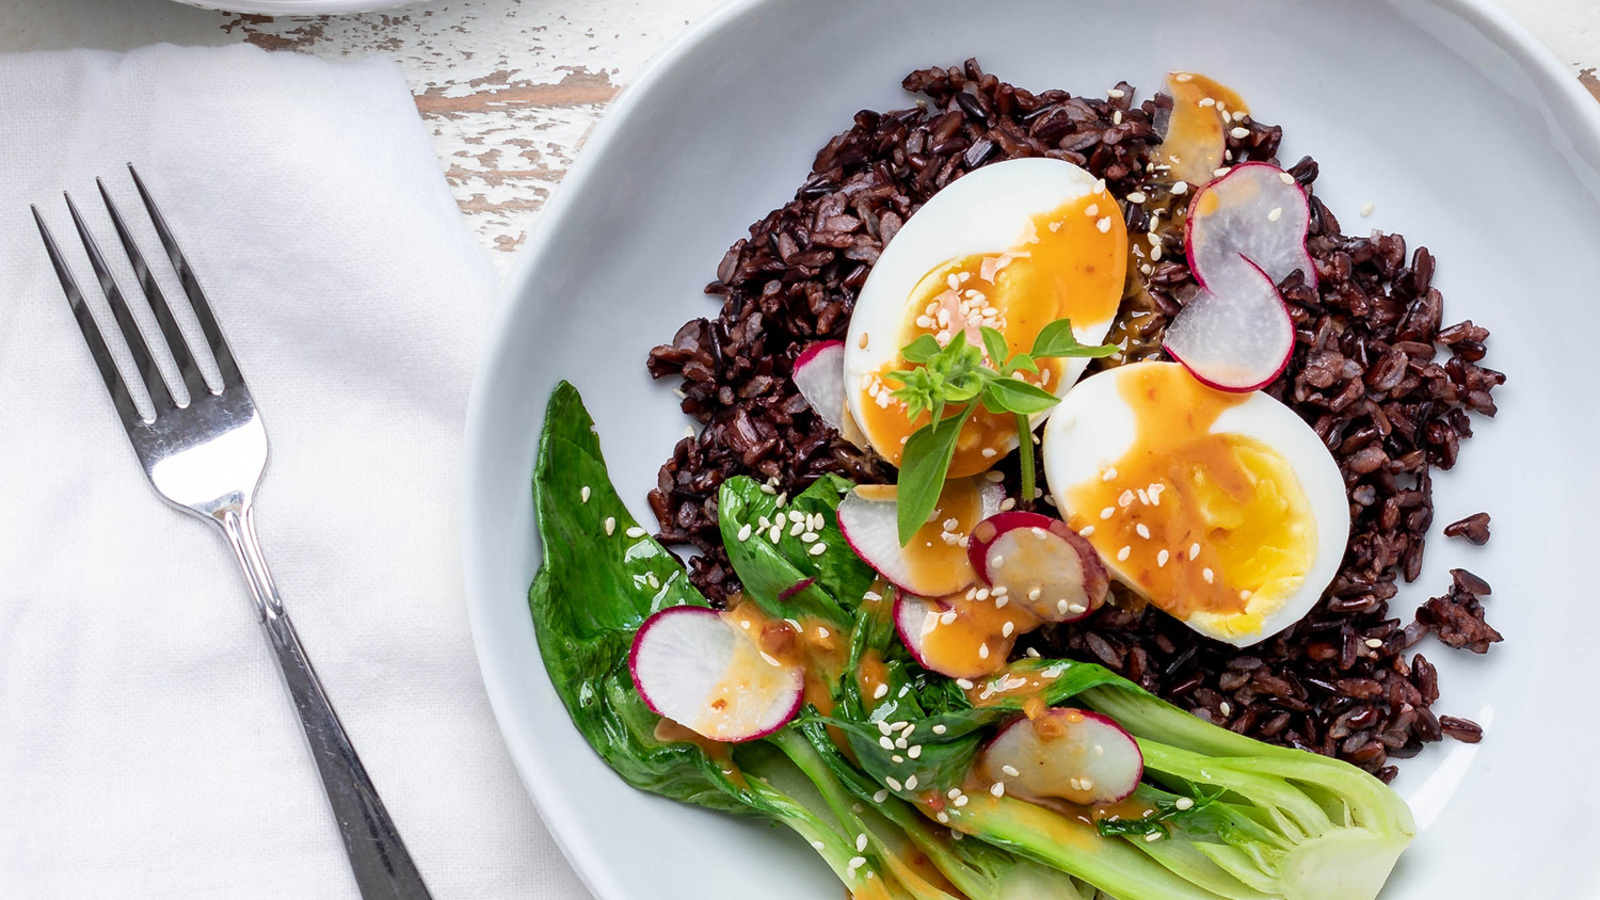 Black rice with eggs and veggies